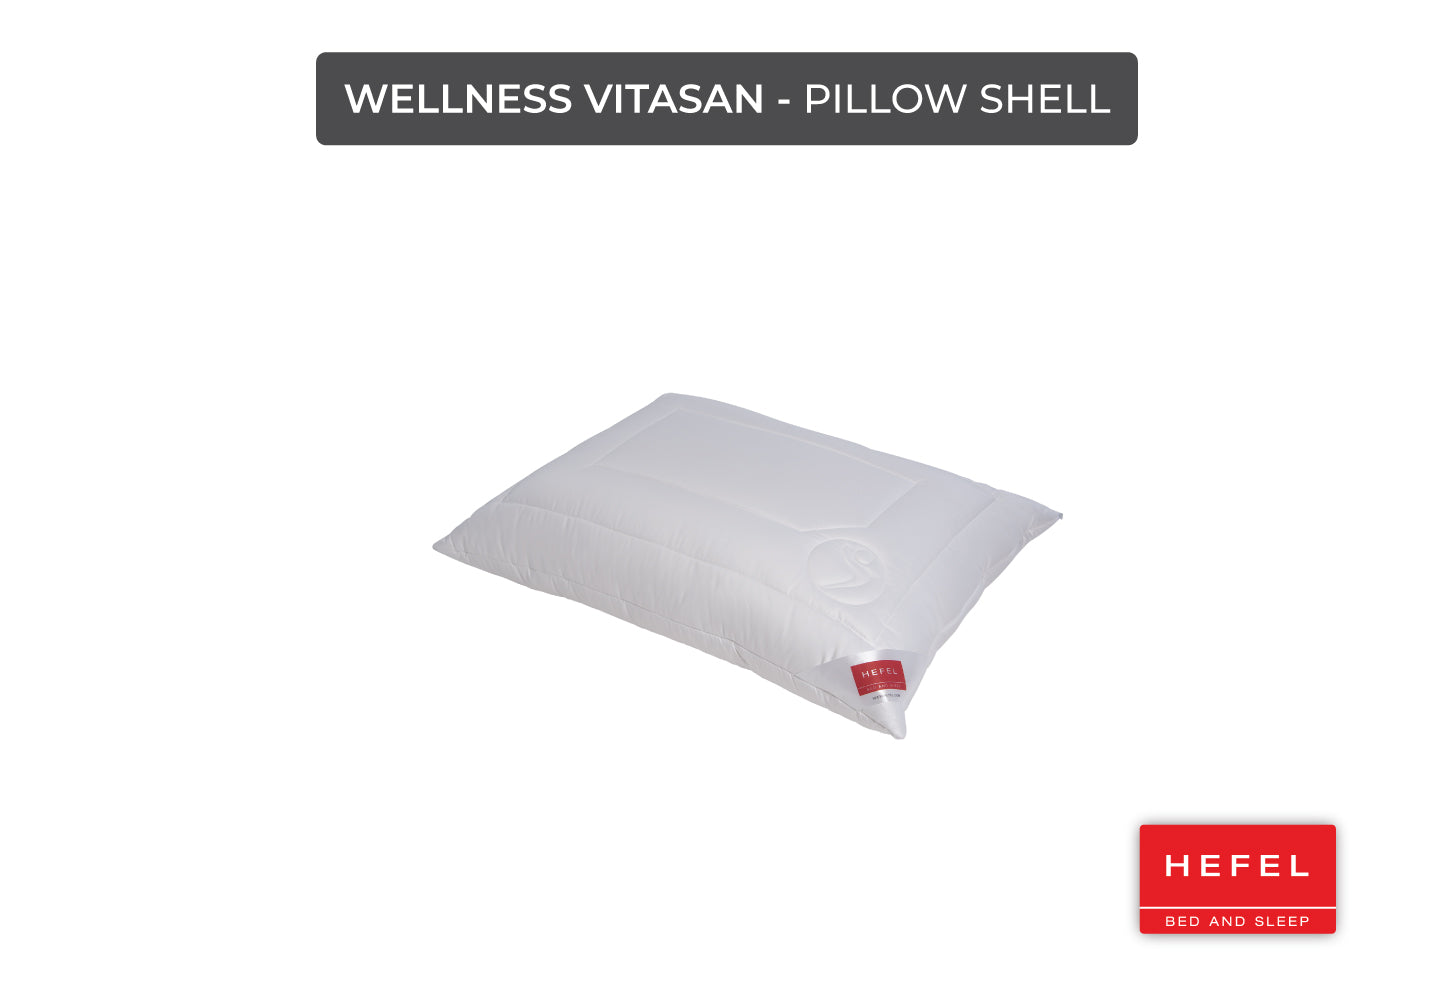 Wellness Vitasan - Pillow Shell